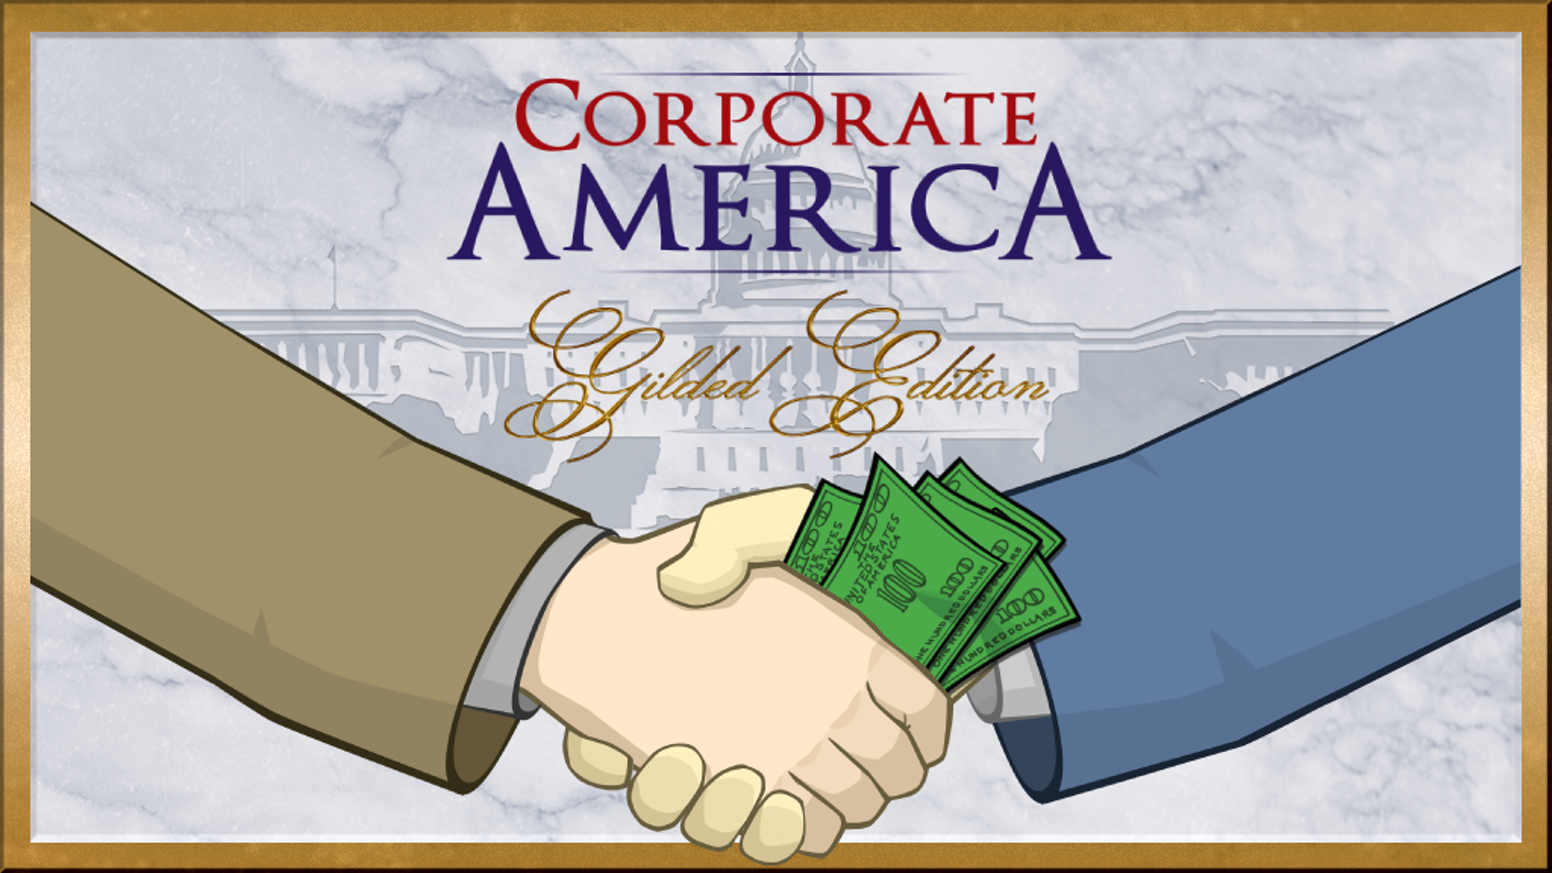 Corporate America is the hilarious political satire game about corporate influence over US politics. (It's more fun than it sounds.)